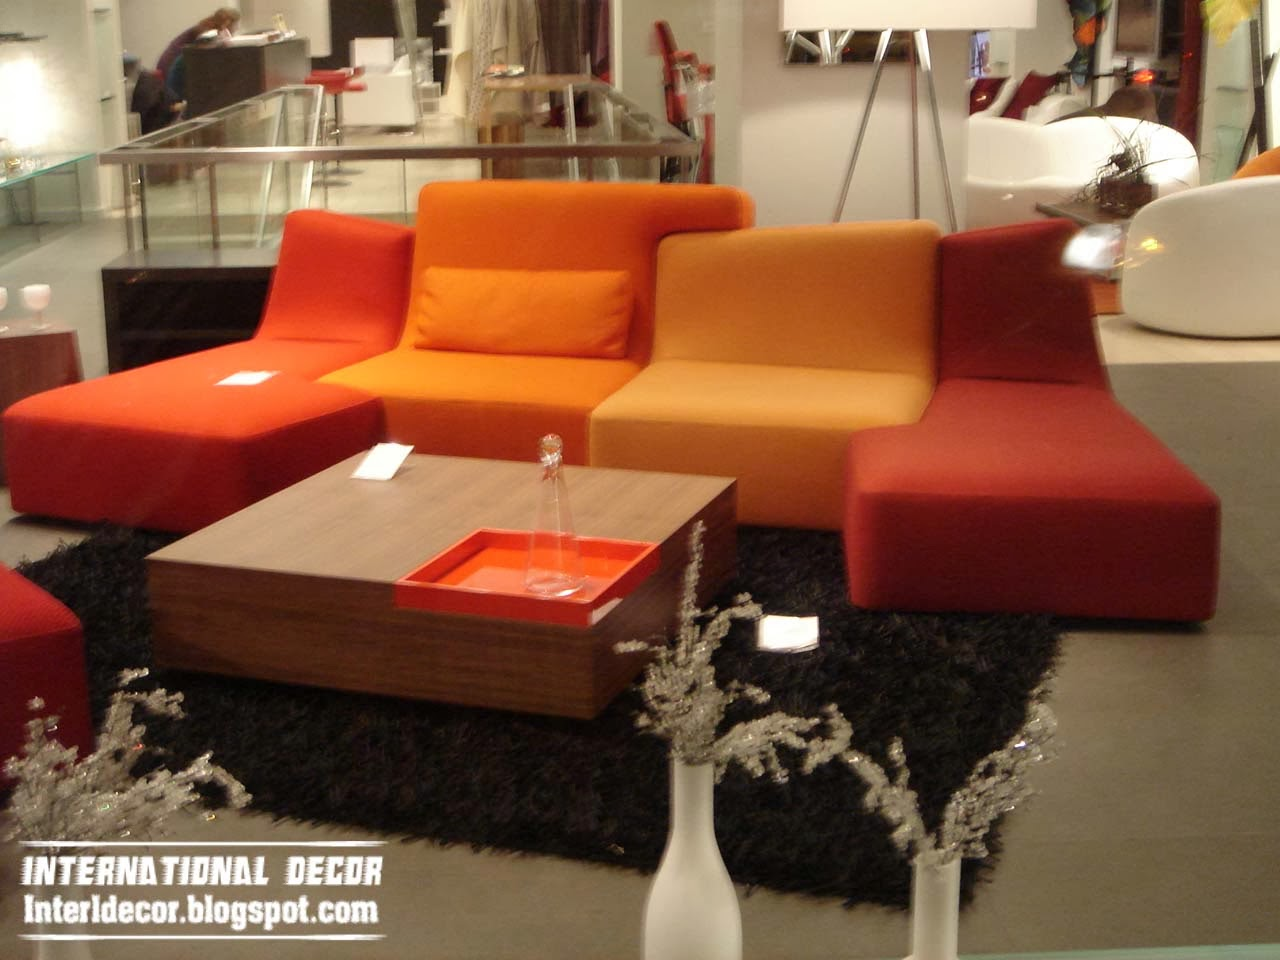 Couches Designs interior design 2014: 12 puzzle sofas and couches furniture sets